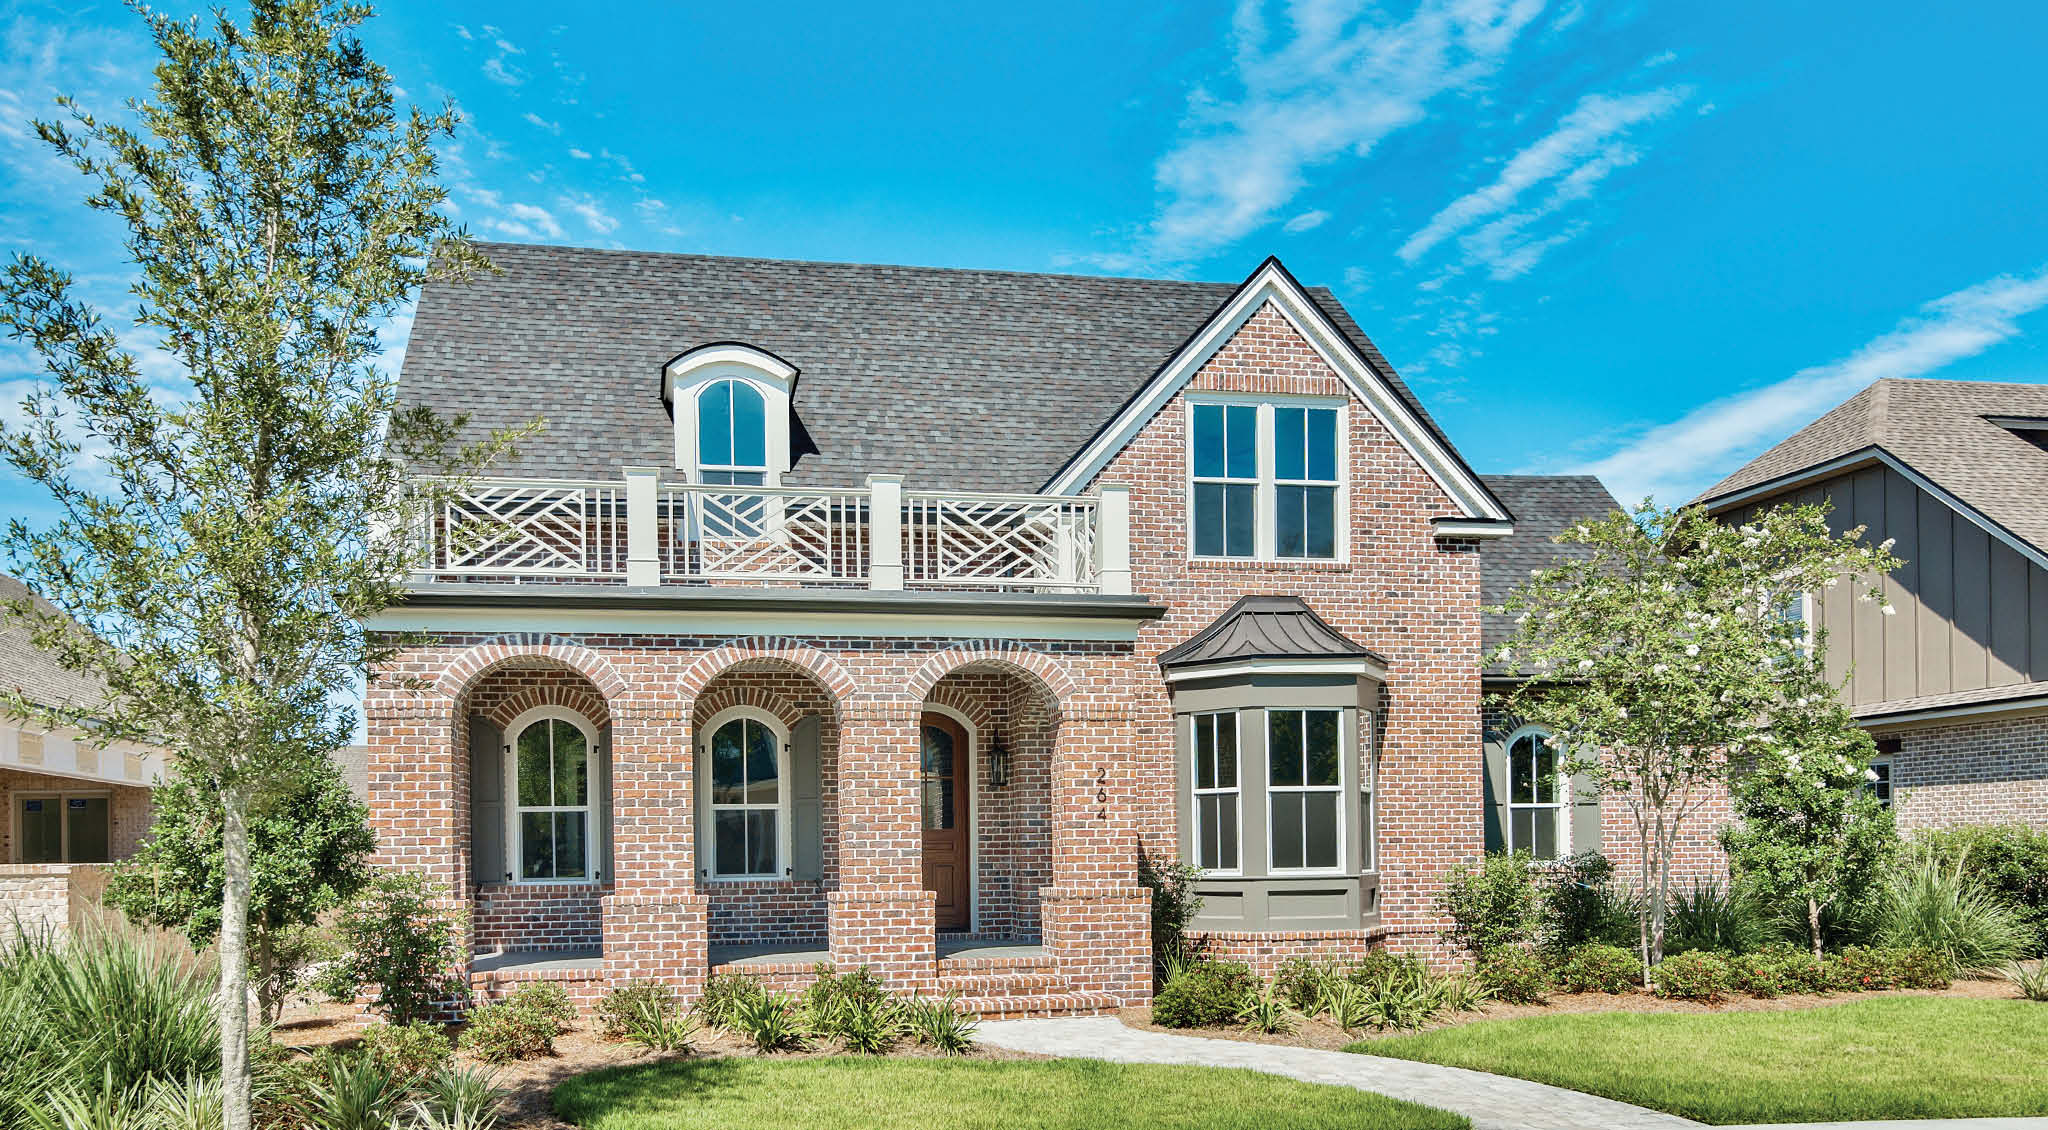 Brick Exterior of Custom Home